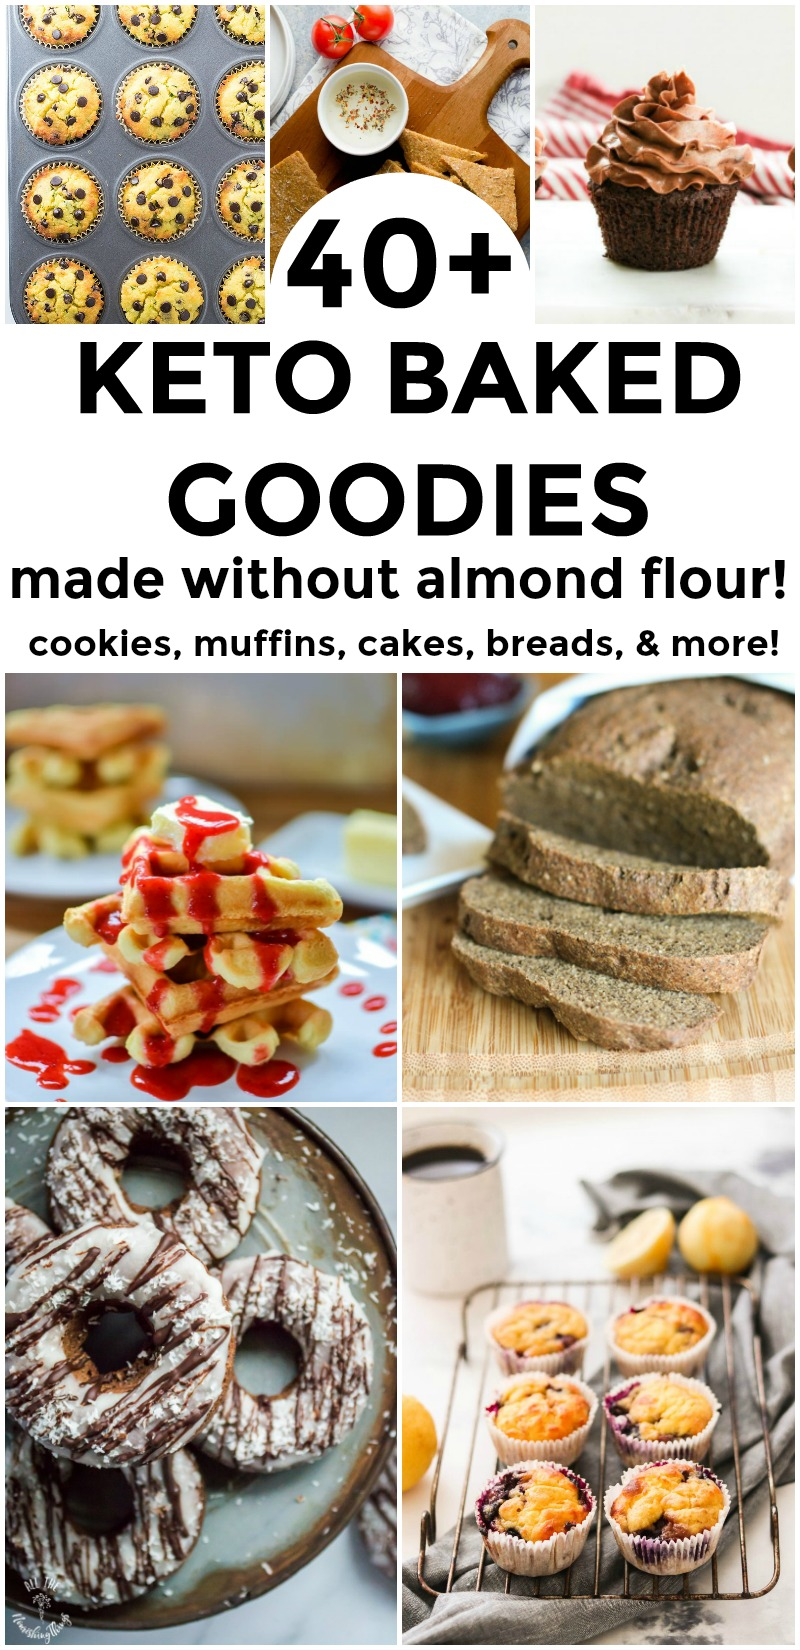 collage of keto baked goods made without almond flour including muffins, cupcakes, donuts, bread, and waffles